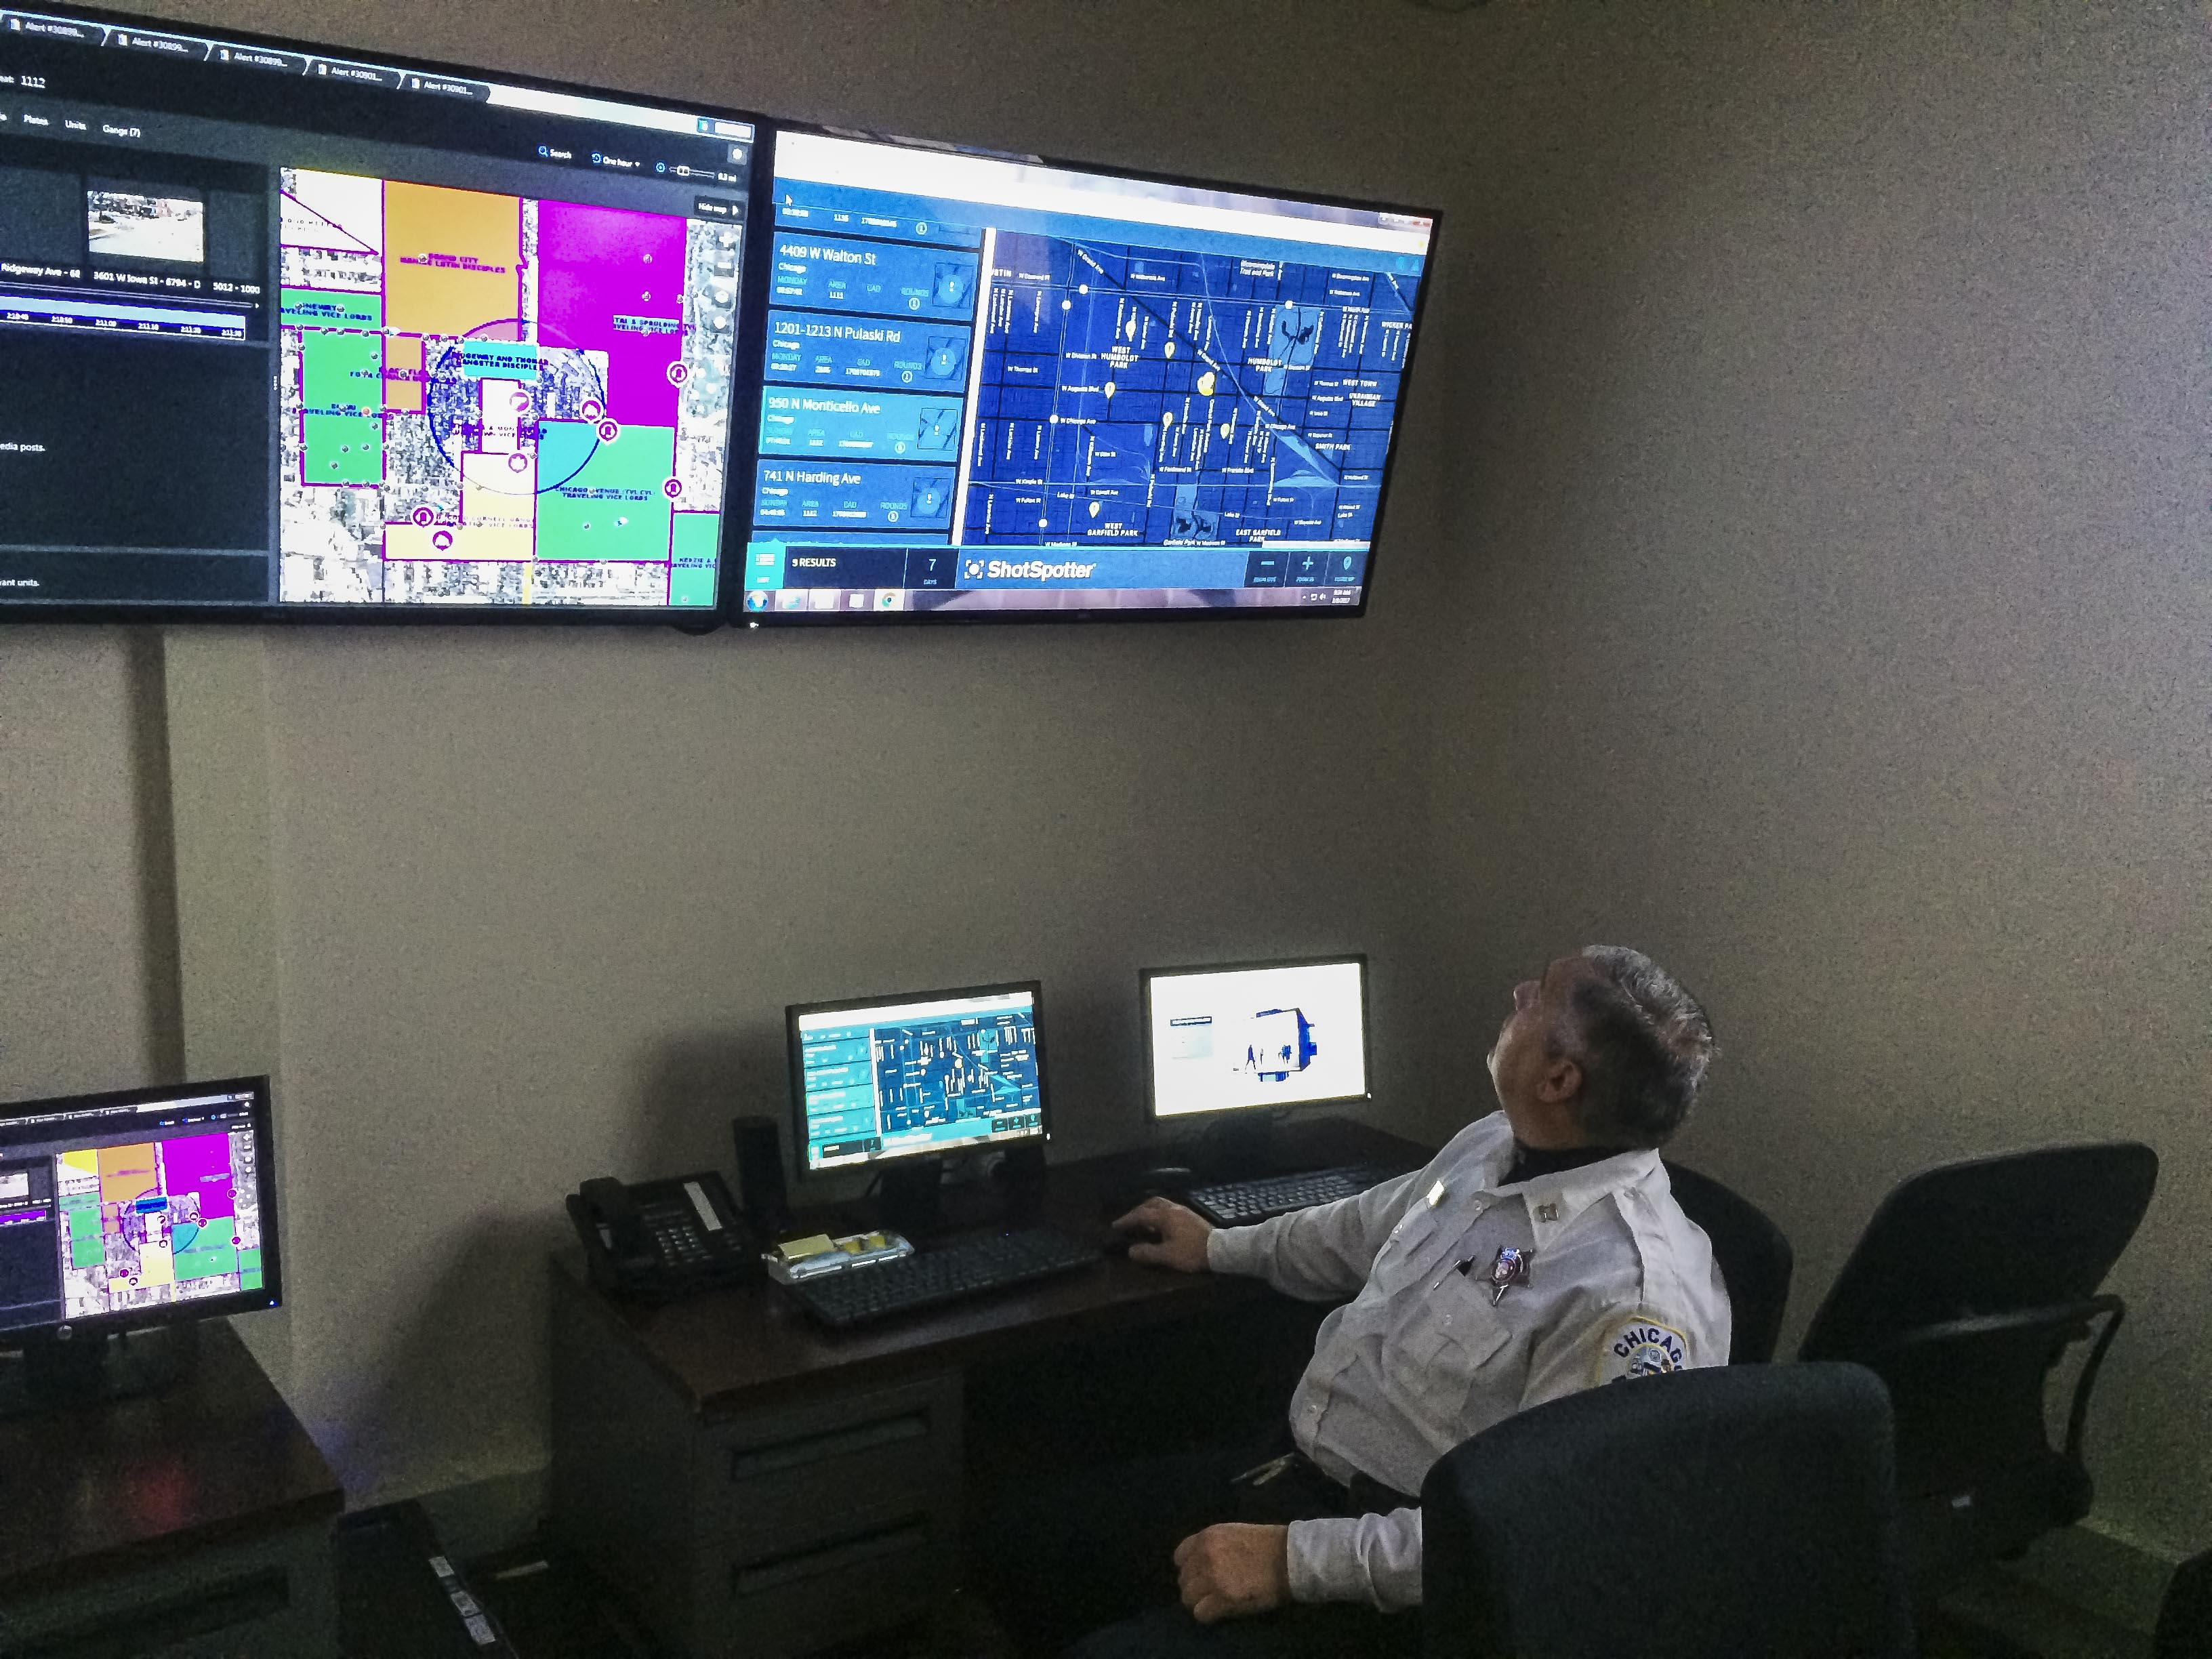 Chicago police Capt. Steven Sesso operates a ShotSpotter gunshot-detection system in the 11th District.